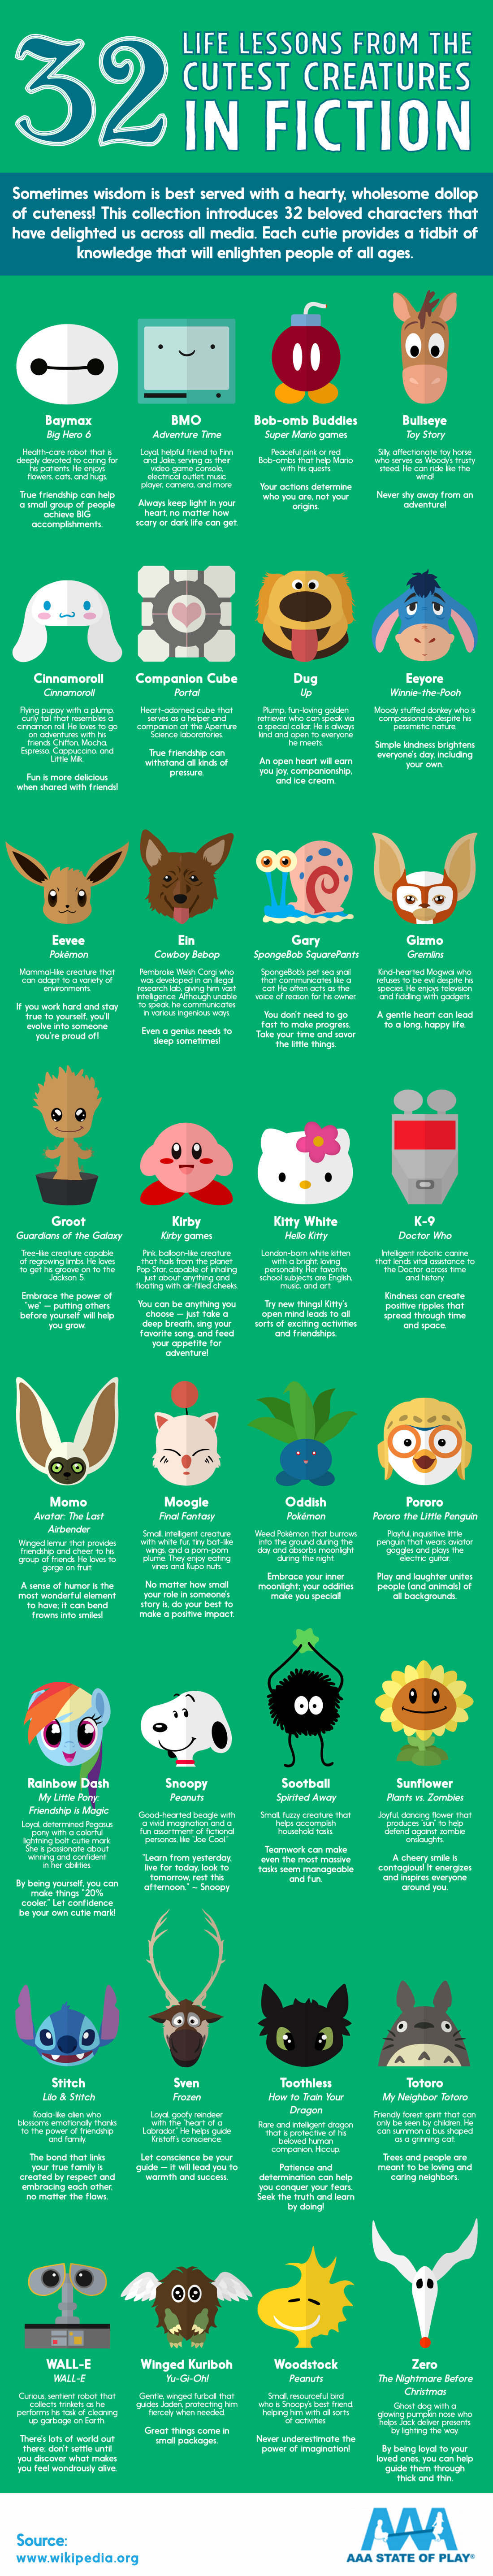 32 Life Lessons from the Cutest Creatures in Fiction - AAAStateofPlay.com - Infographic